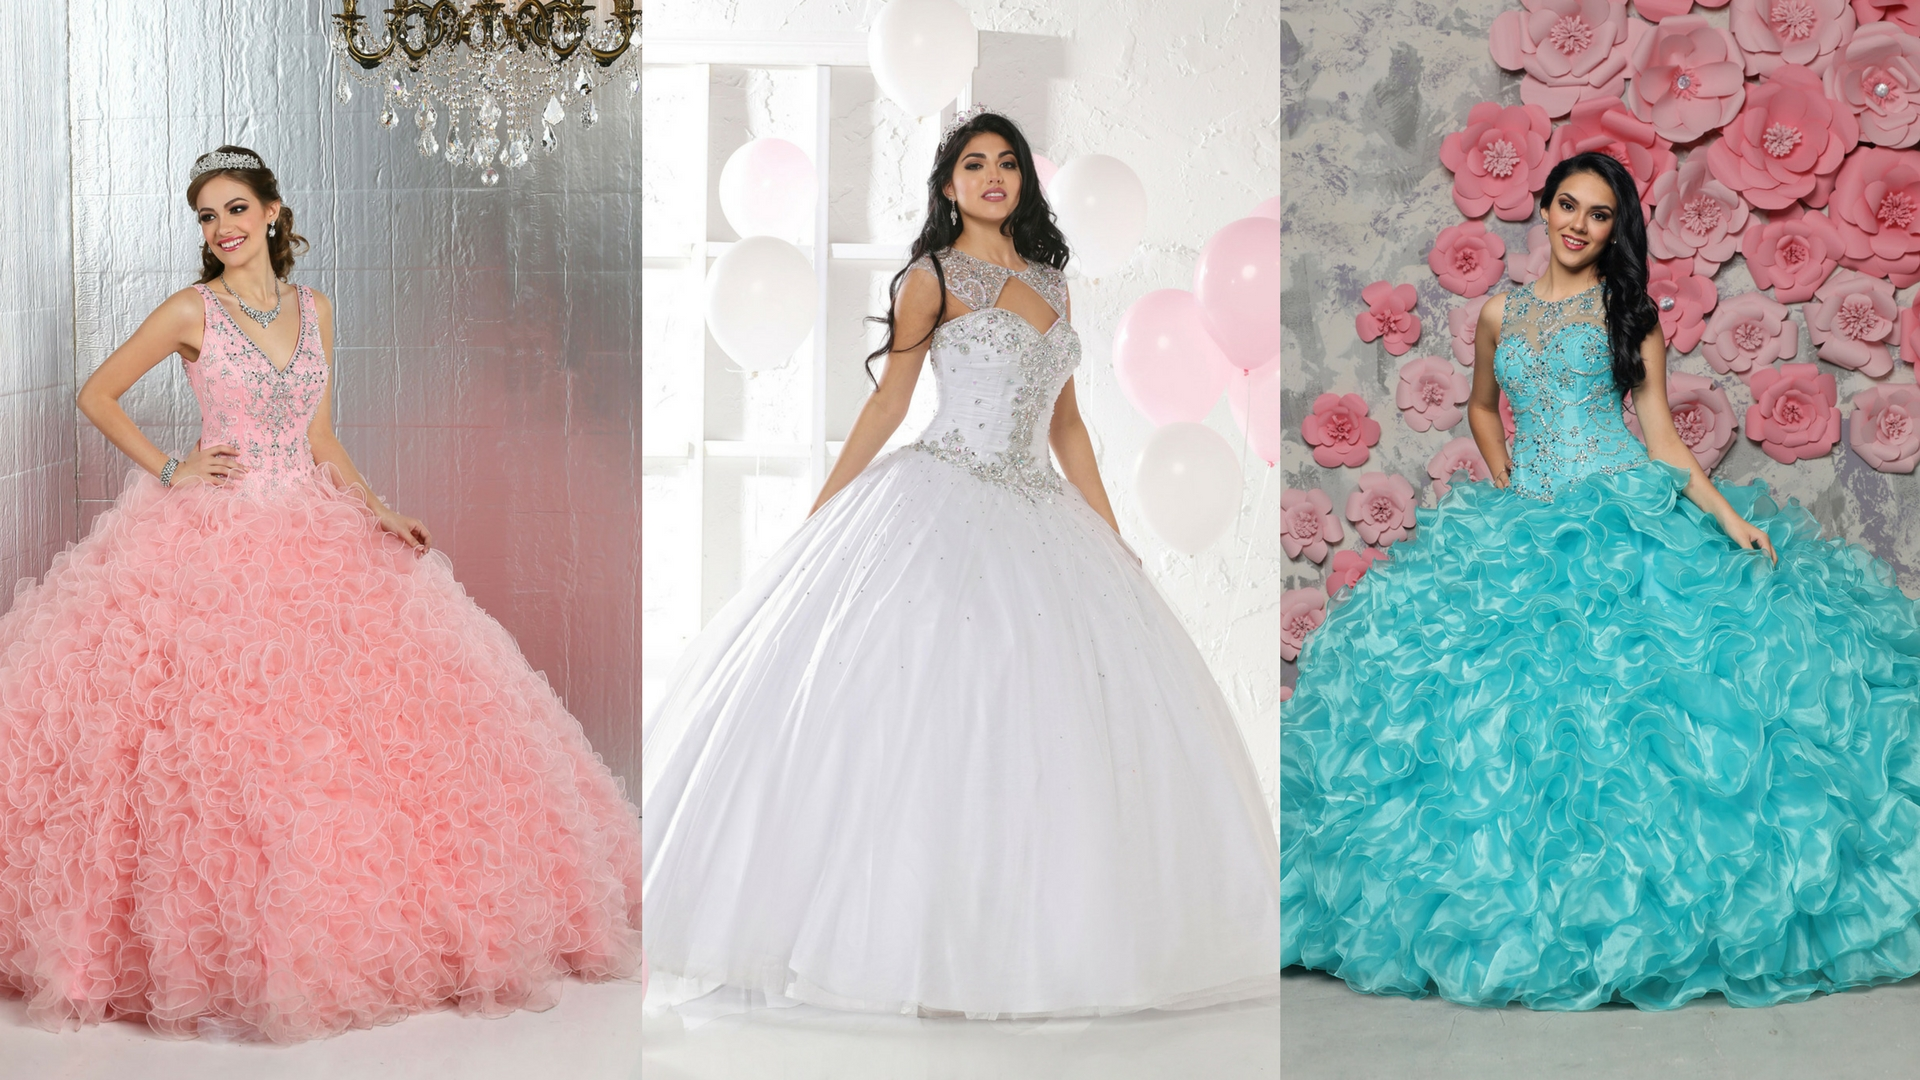 20da0ed262 2017 Special Part Two  9 More Quinceanera Gowns with Style!